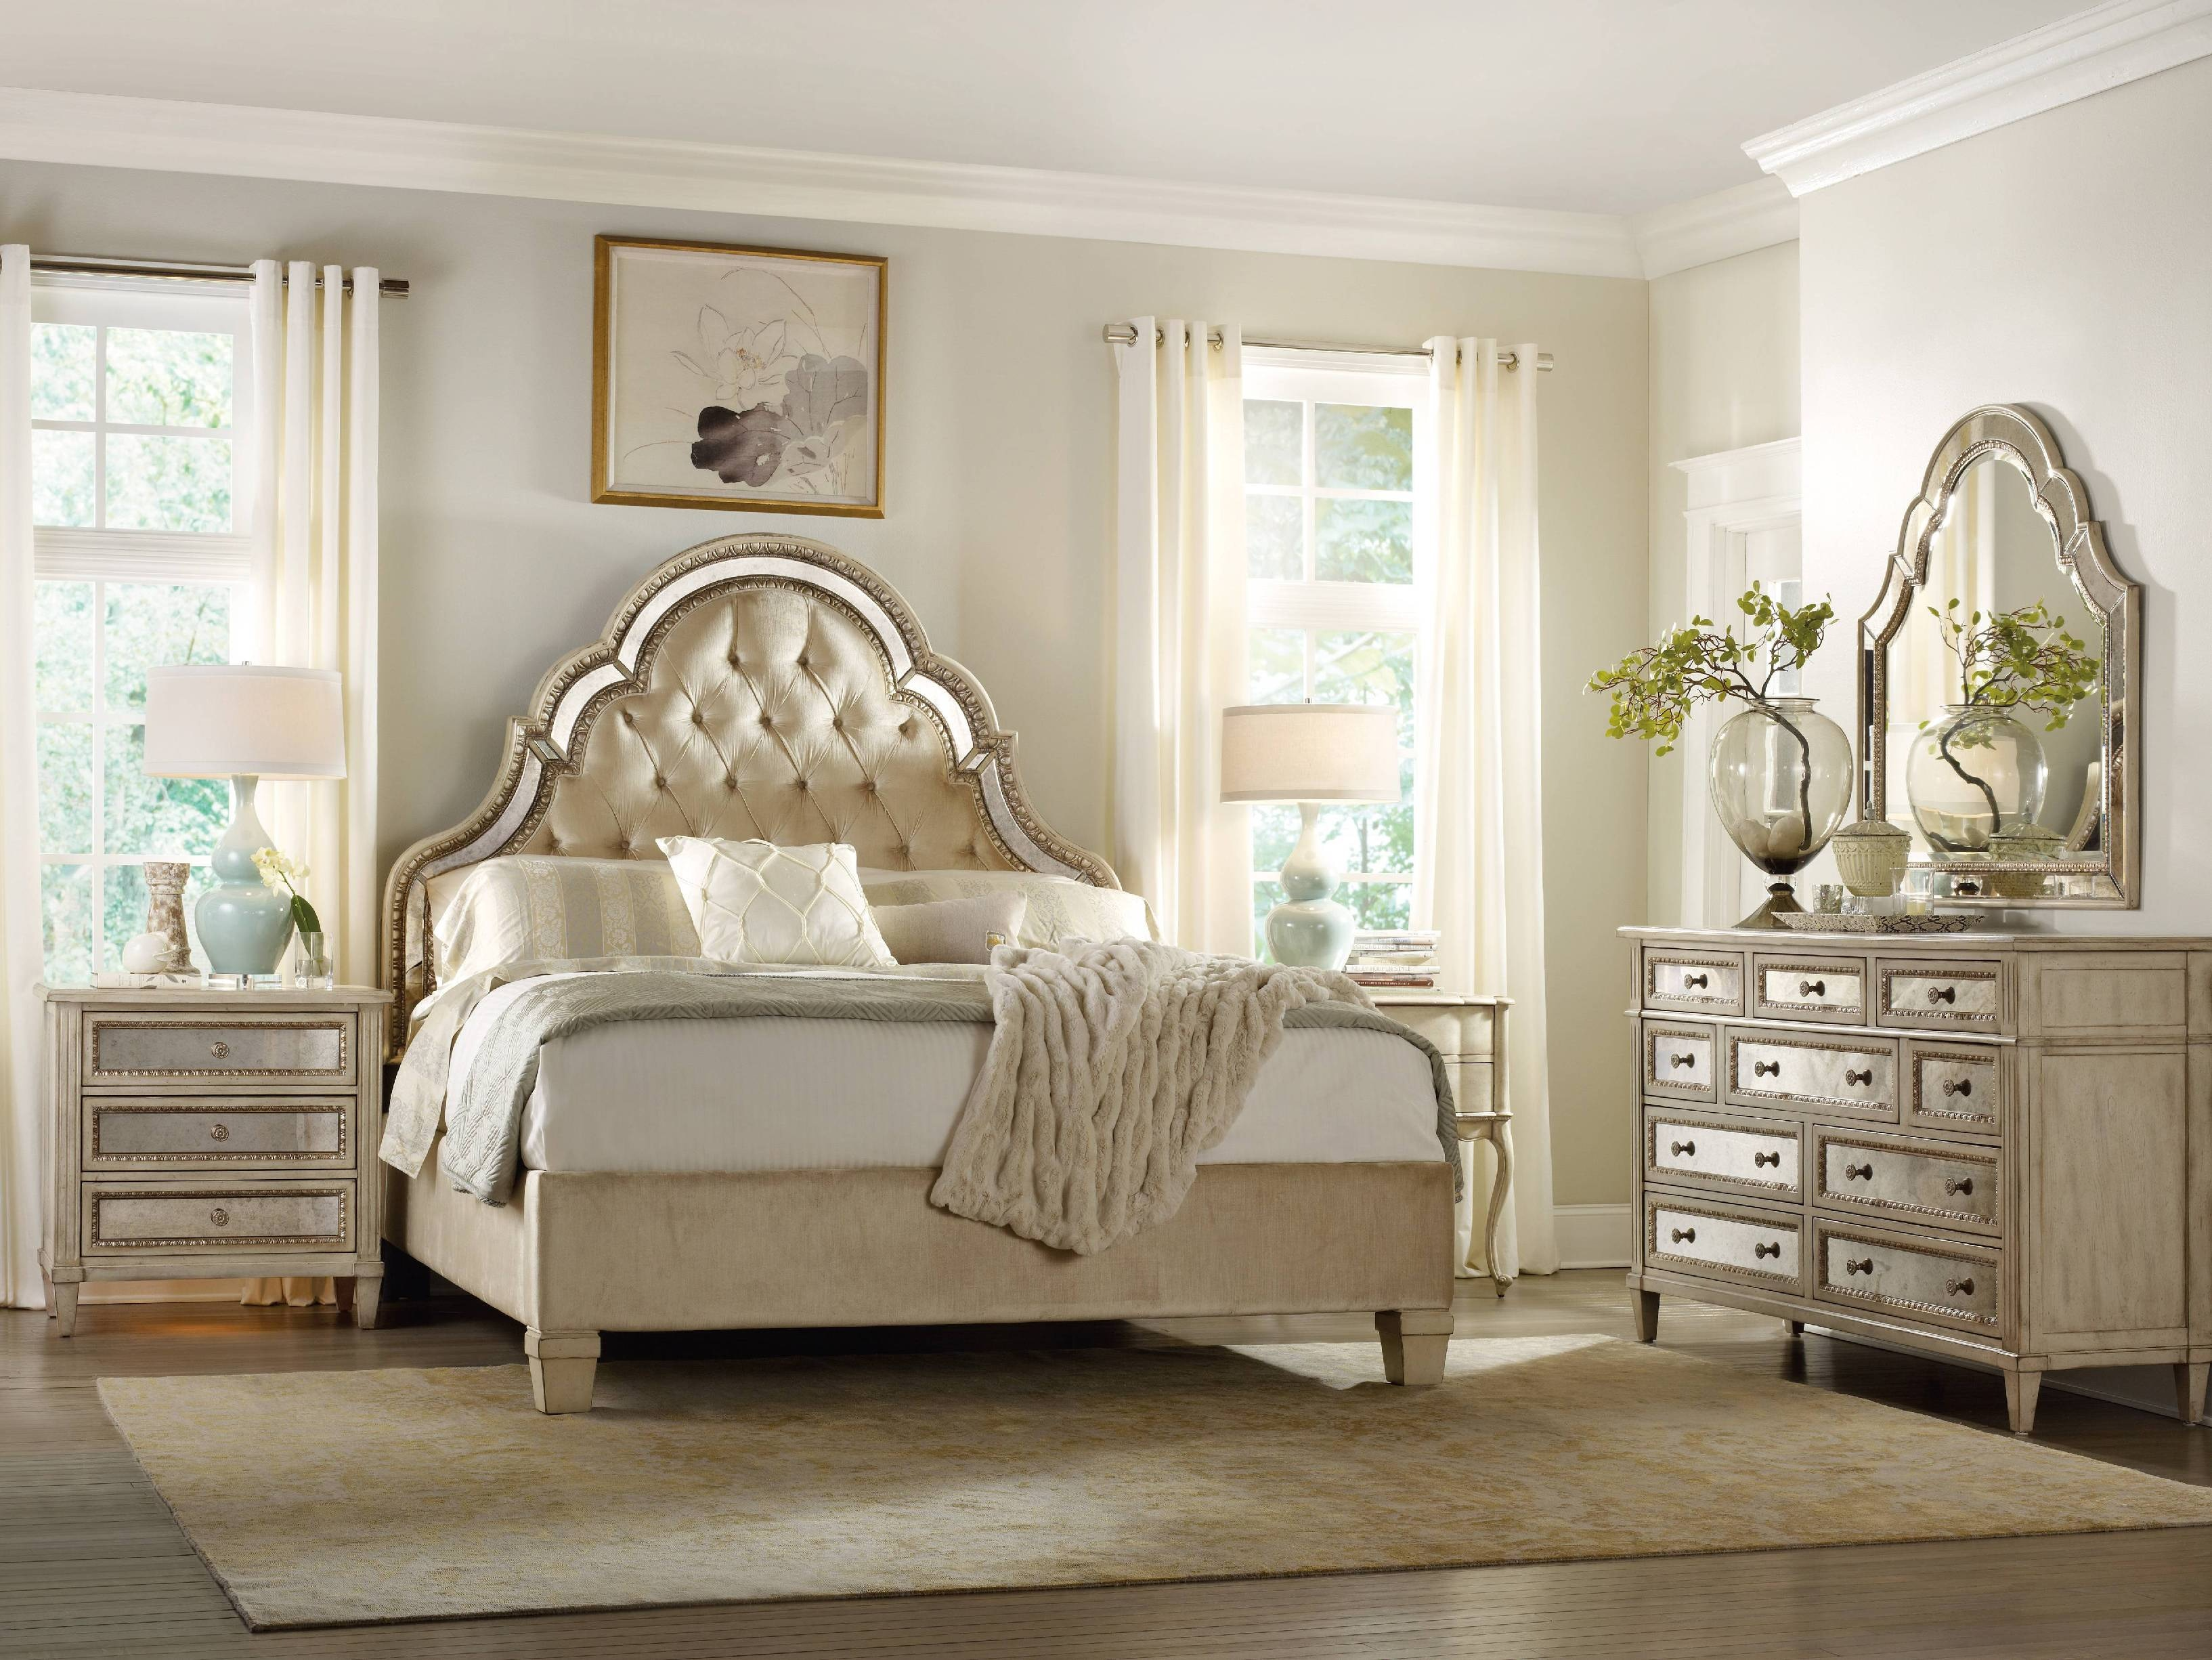 Hooker Furniture Sanctuary King Tufted Bed Pearl Essence 3023 90866